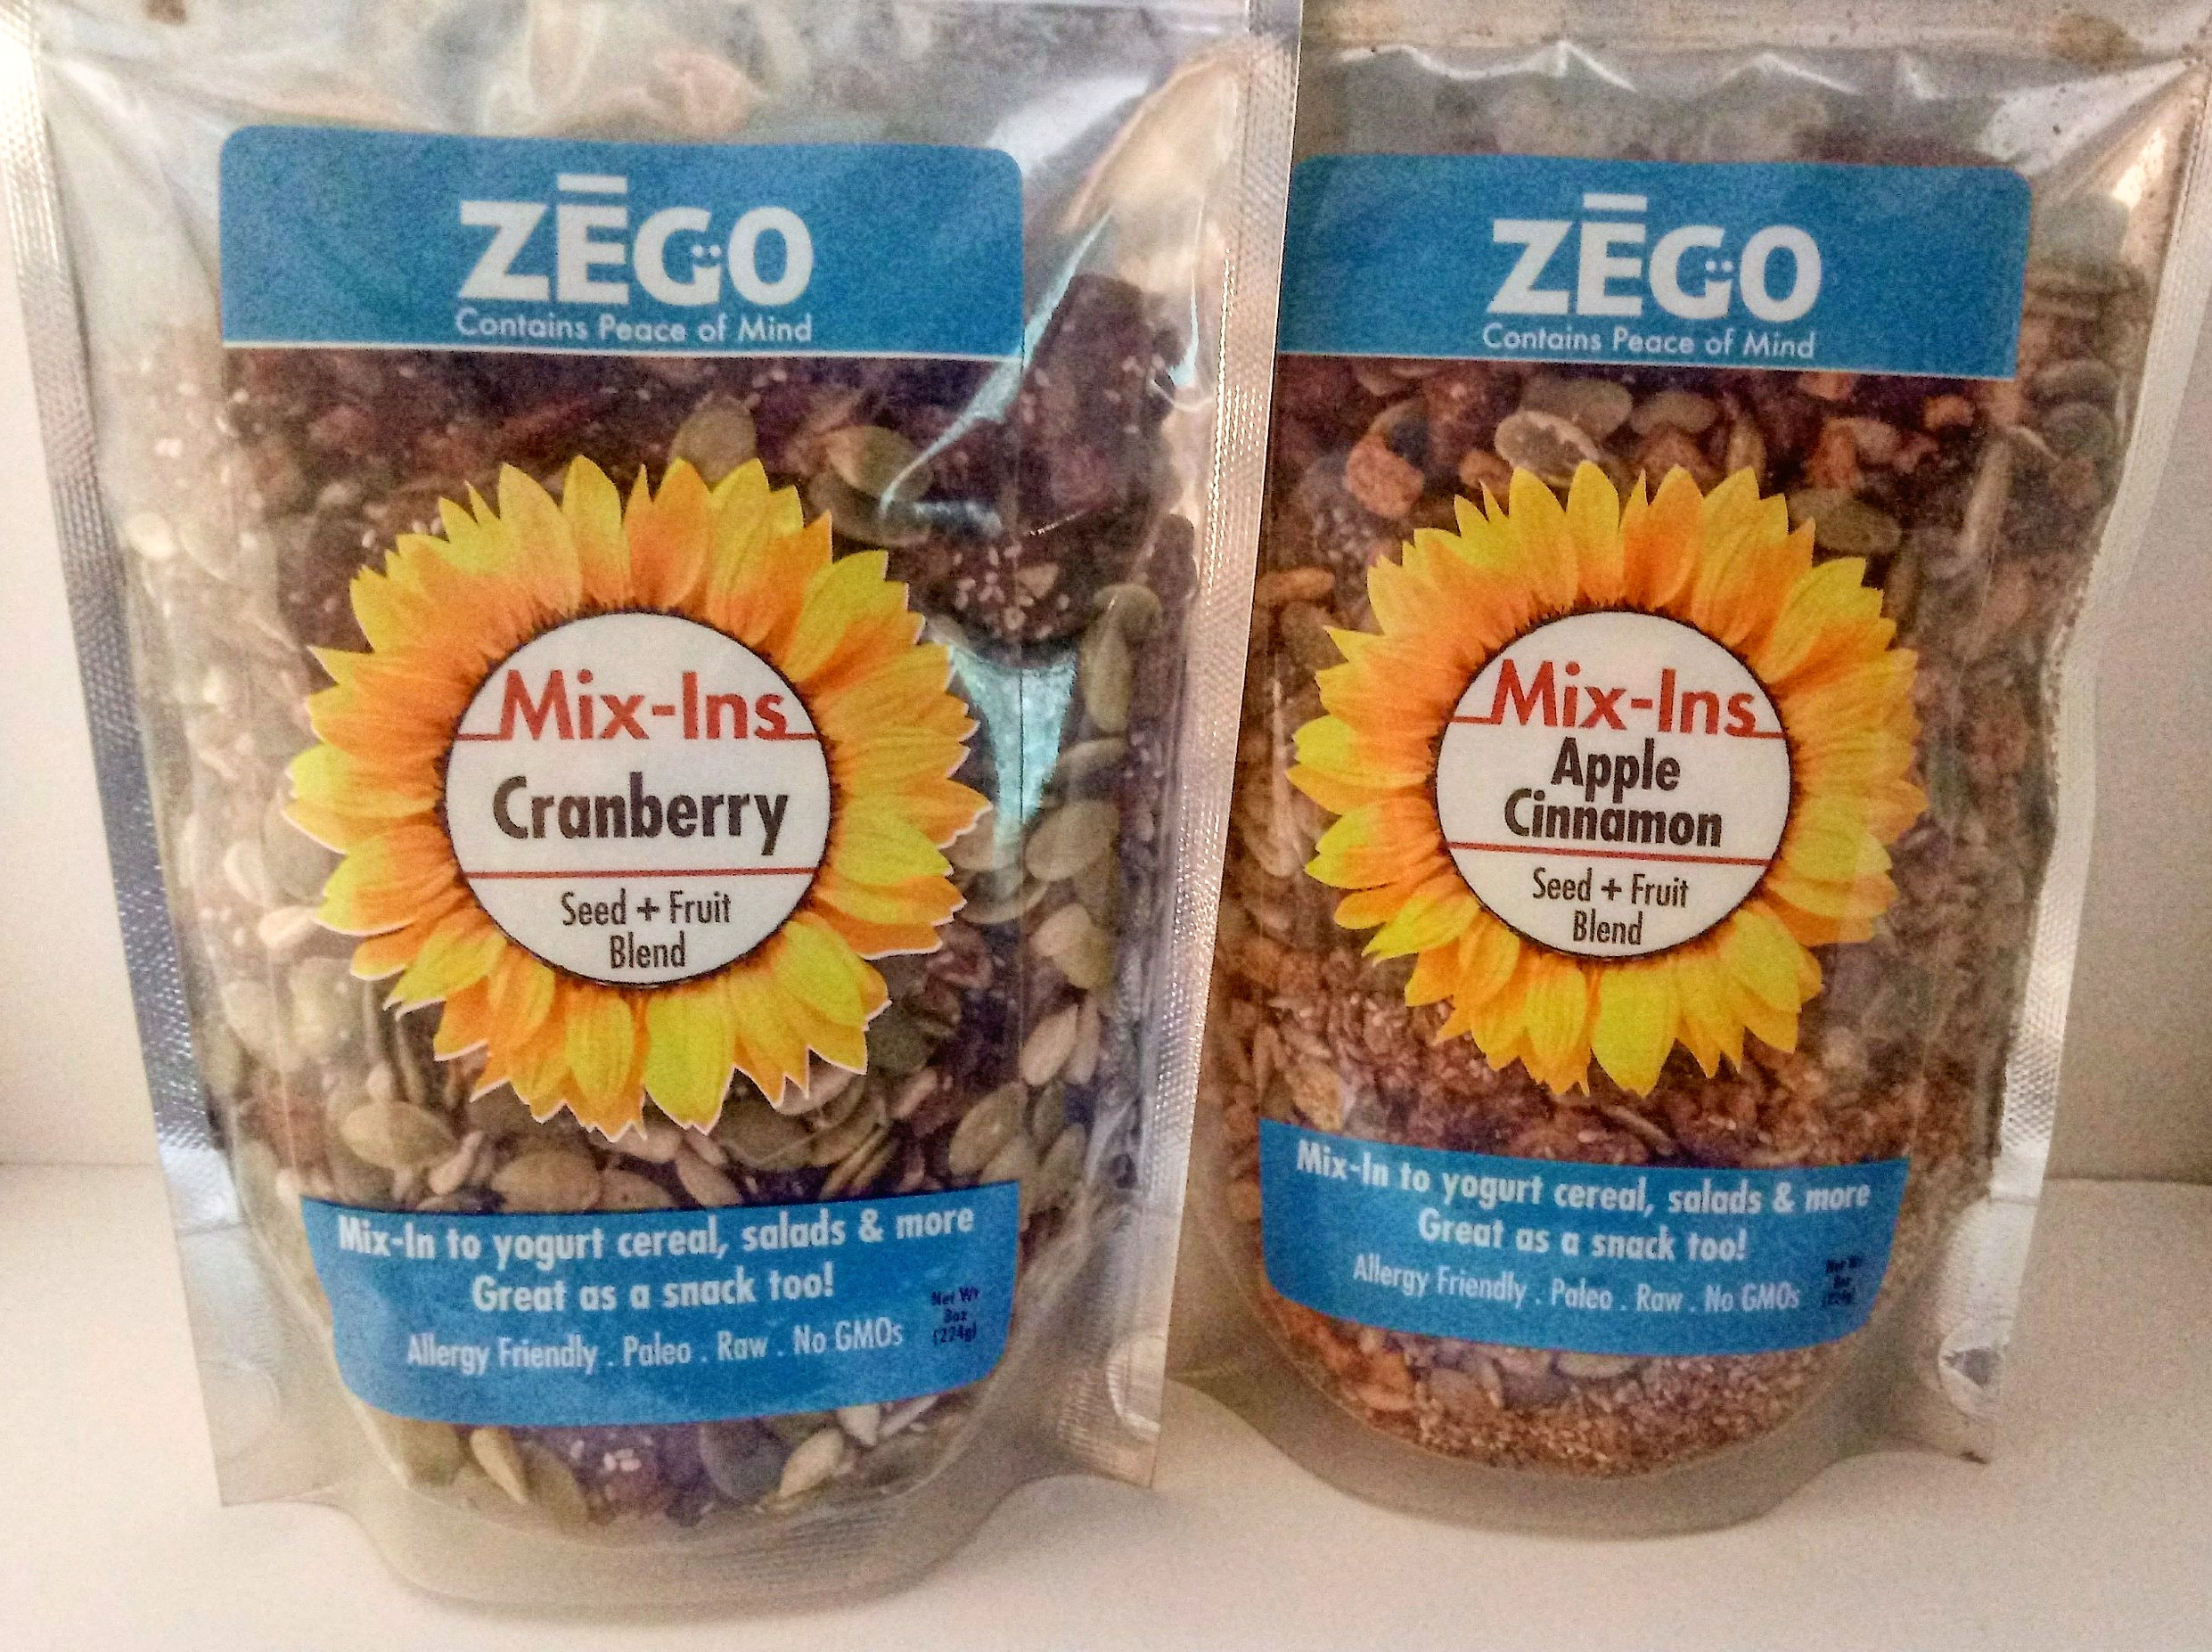 - Zego Mix-Ins come in 2 flavors:Cranberry & Apple Cinnamon